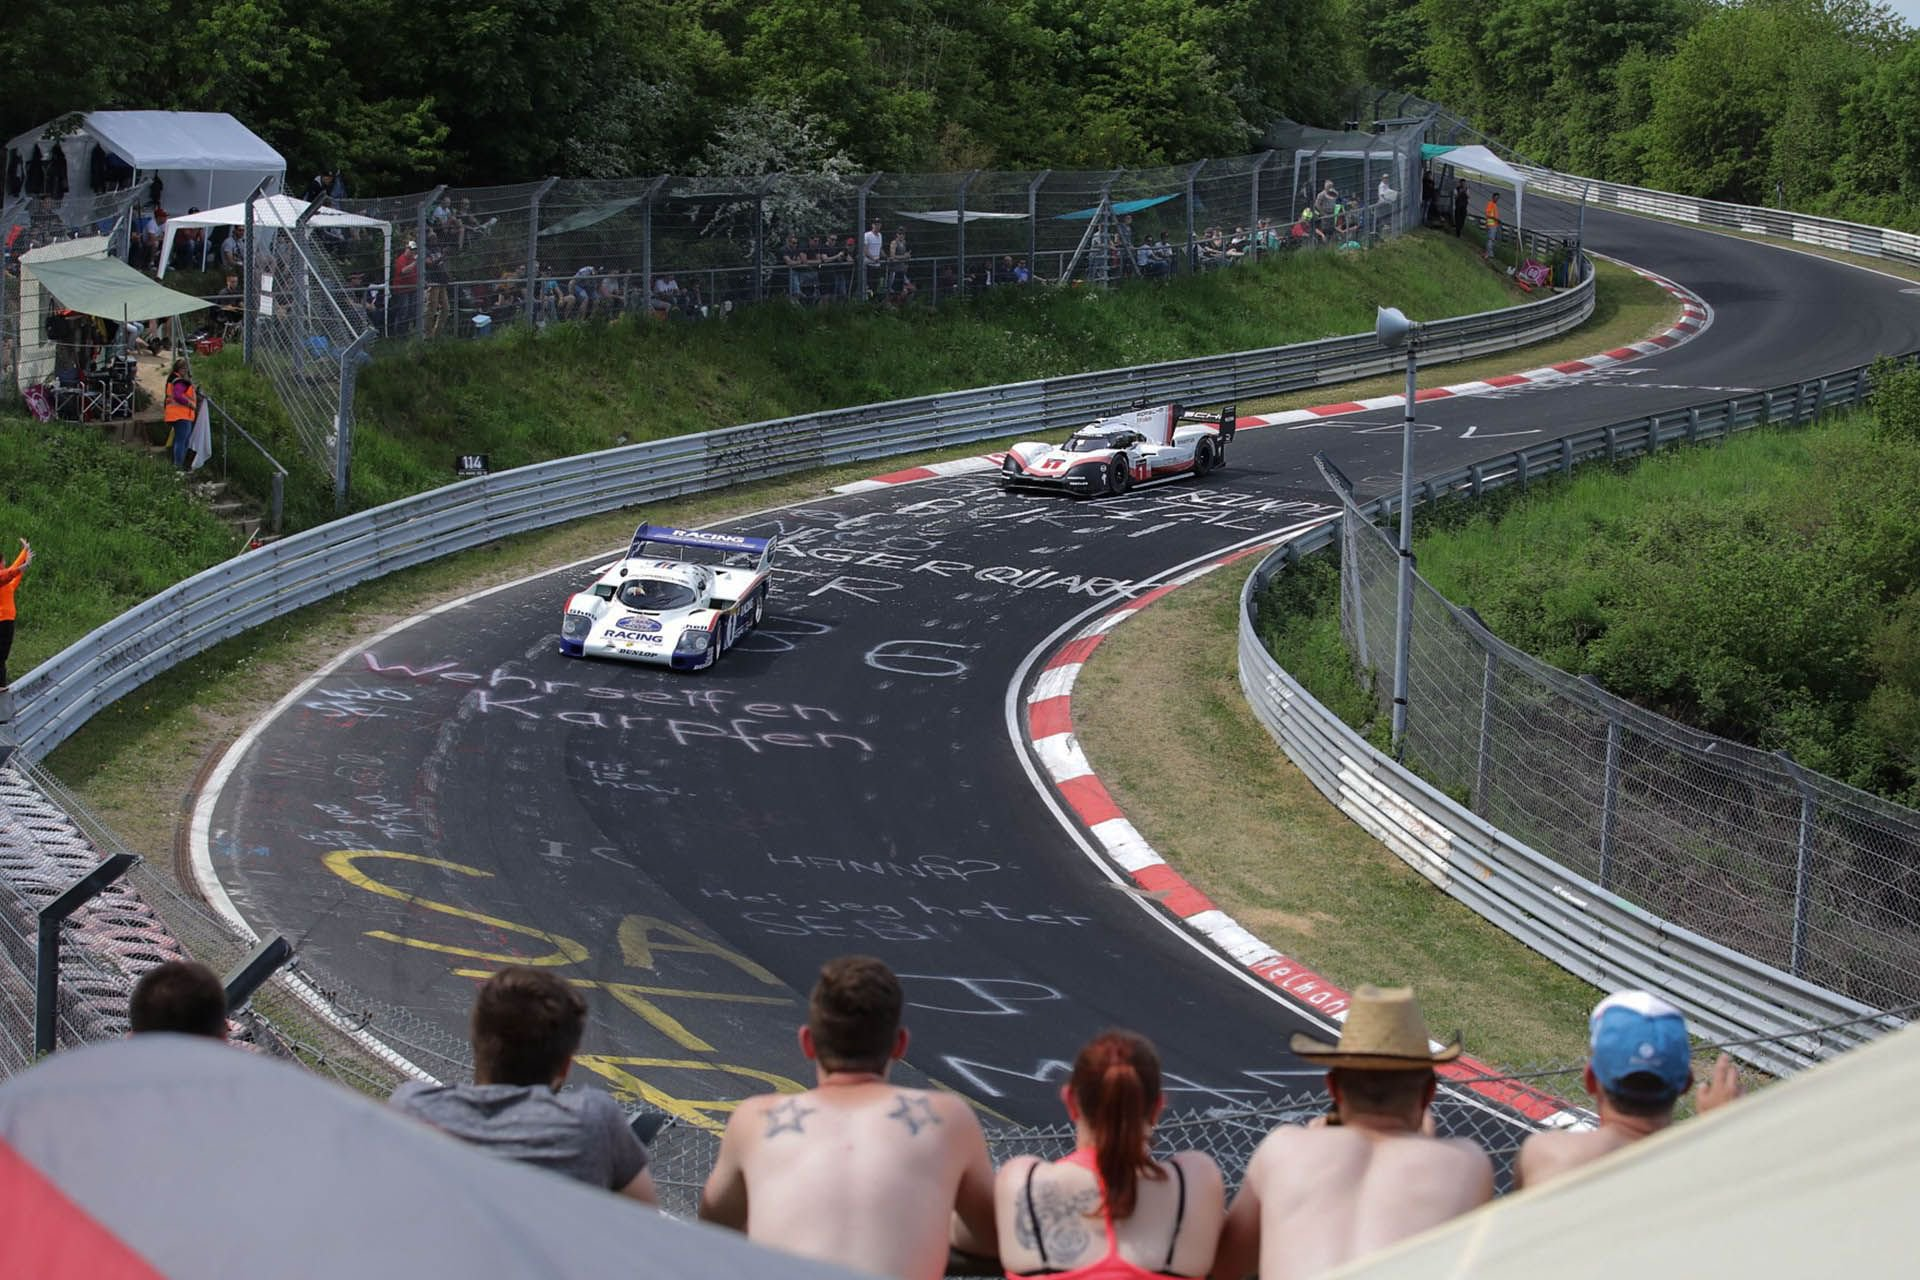 Porsche 919 Hybrid Evo and 956 at Nurburgring (12)